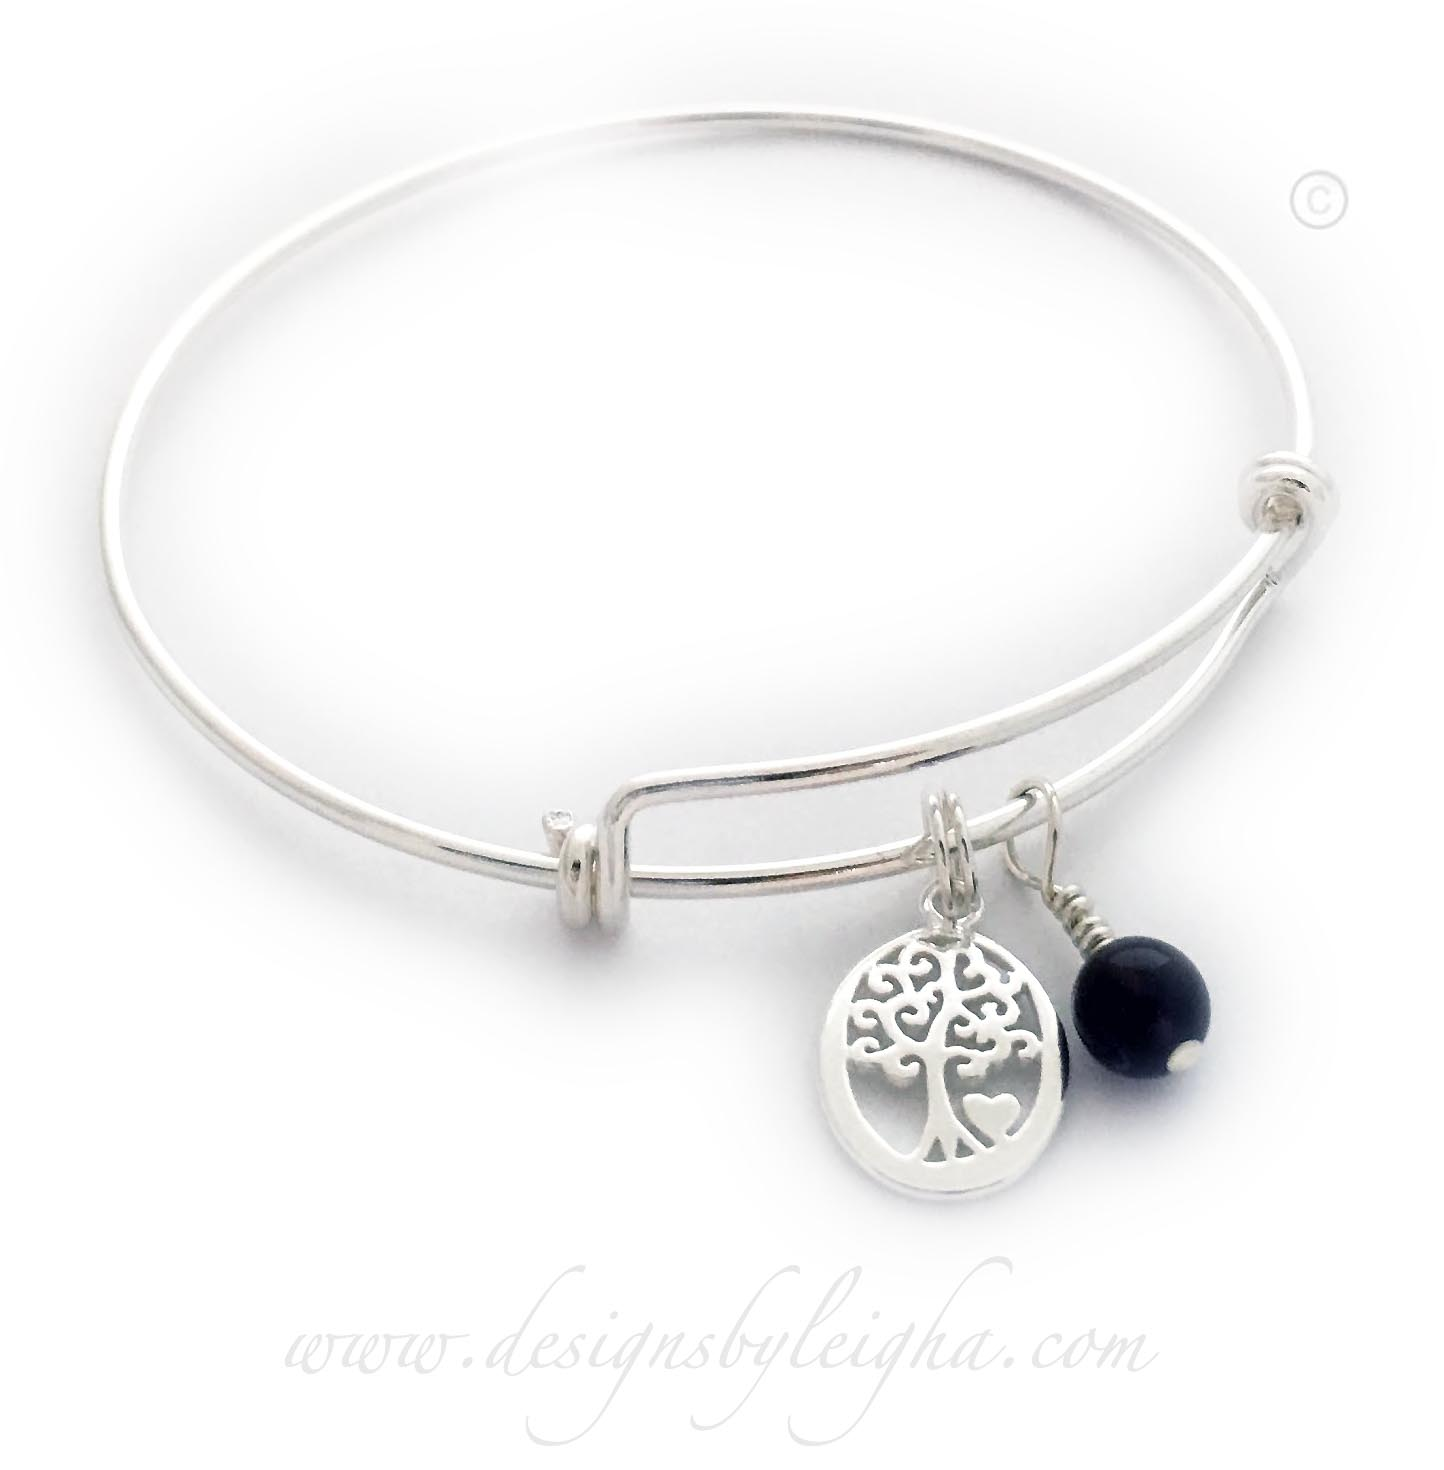 Tree of Life Charm Bracelet  DBL-Bangle-1  This Tree of Life Charm Bracelet comes with the Tree of Life charm. They added an Amethyst Birthstone Charm to their order.